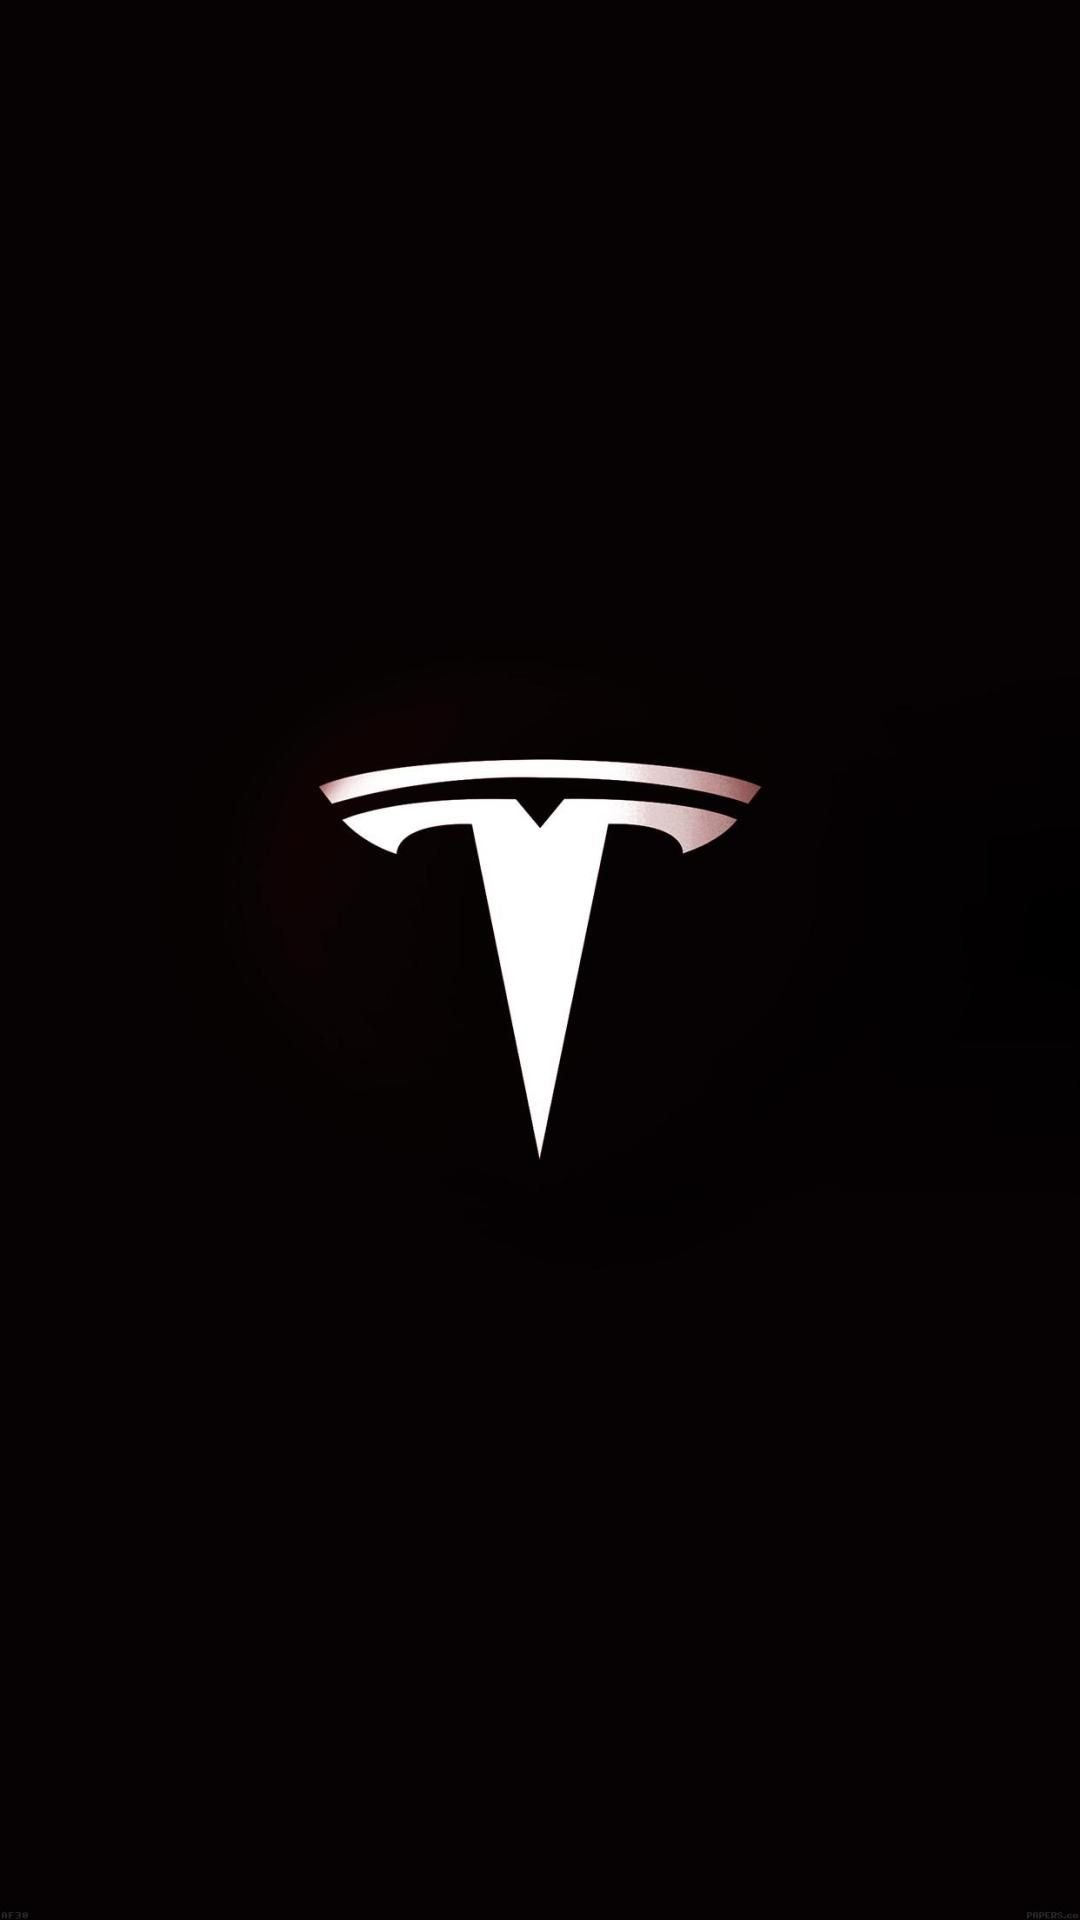 Tesla Phone iPhone 8 wallpaper